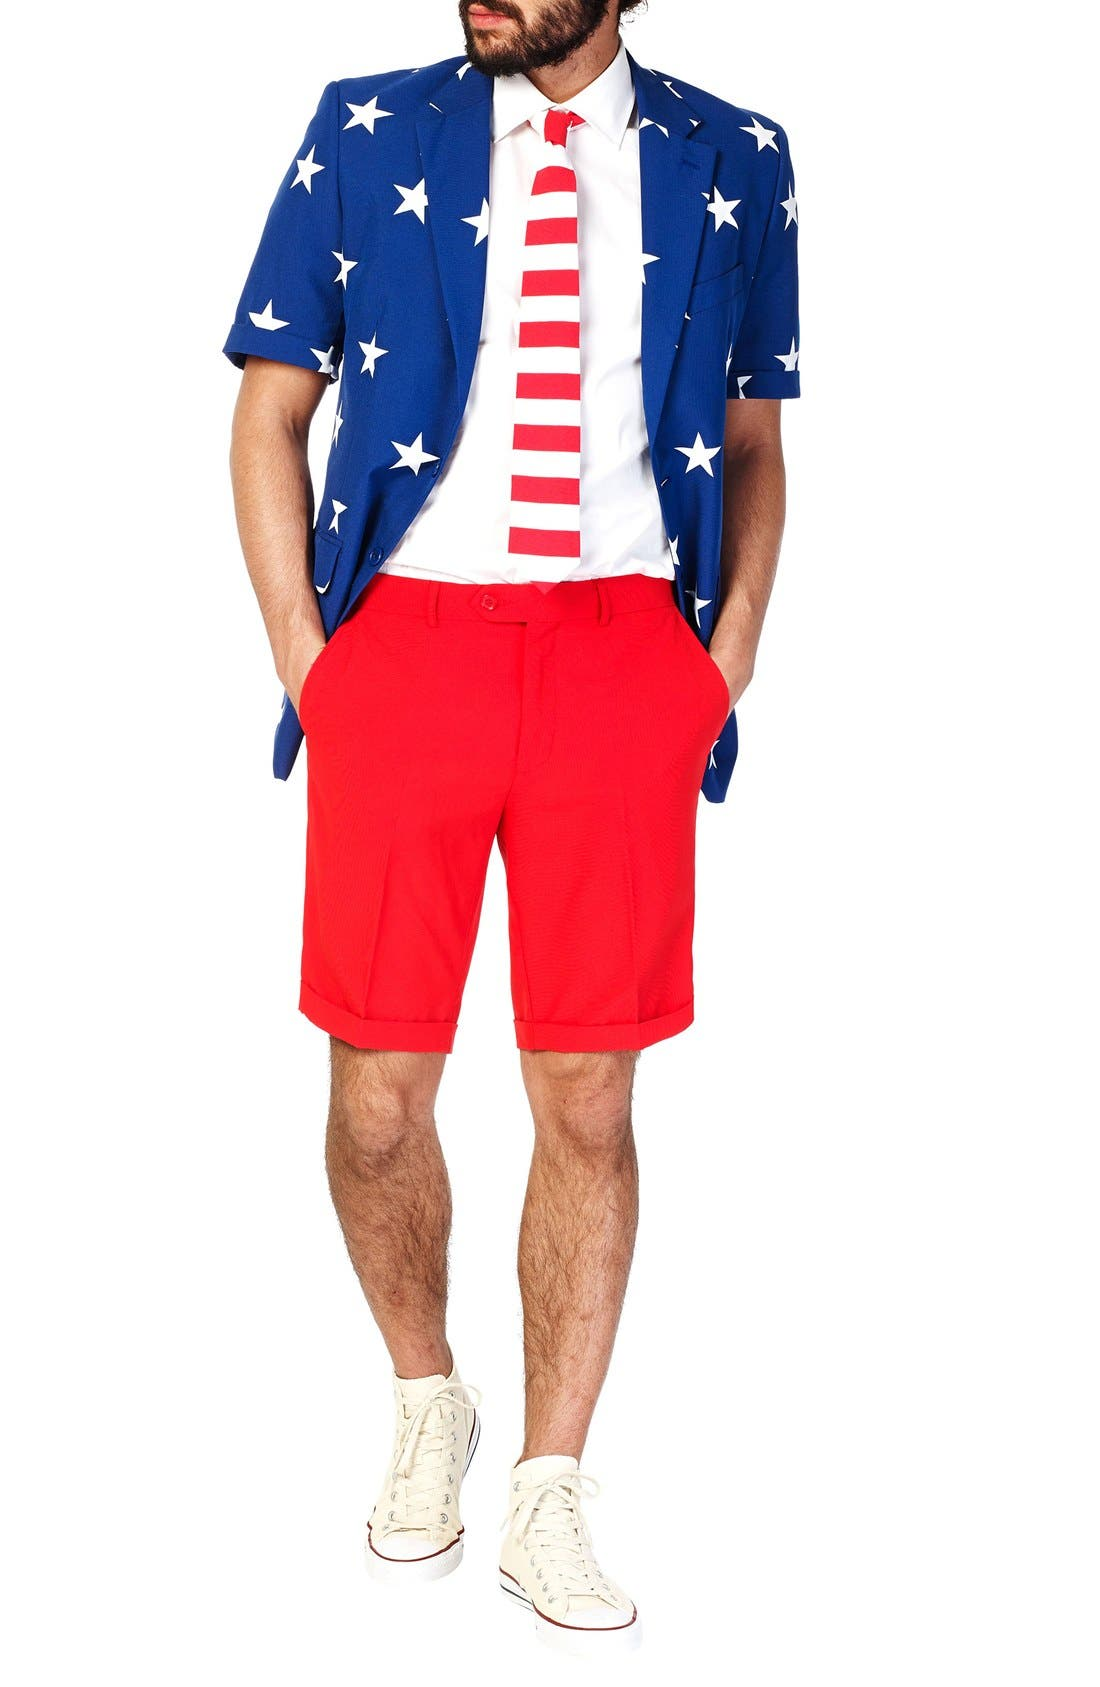 OppoSuits 'Summer Stars & Stripes' Trim Fit Short Suit with Tie